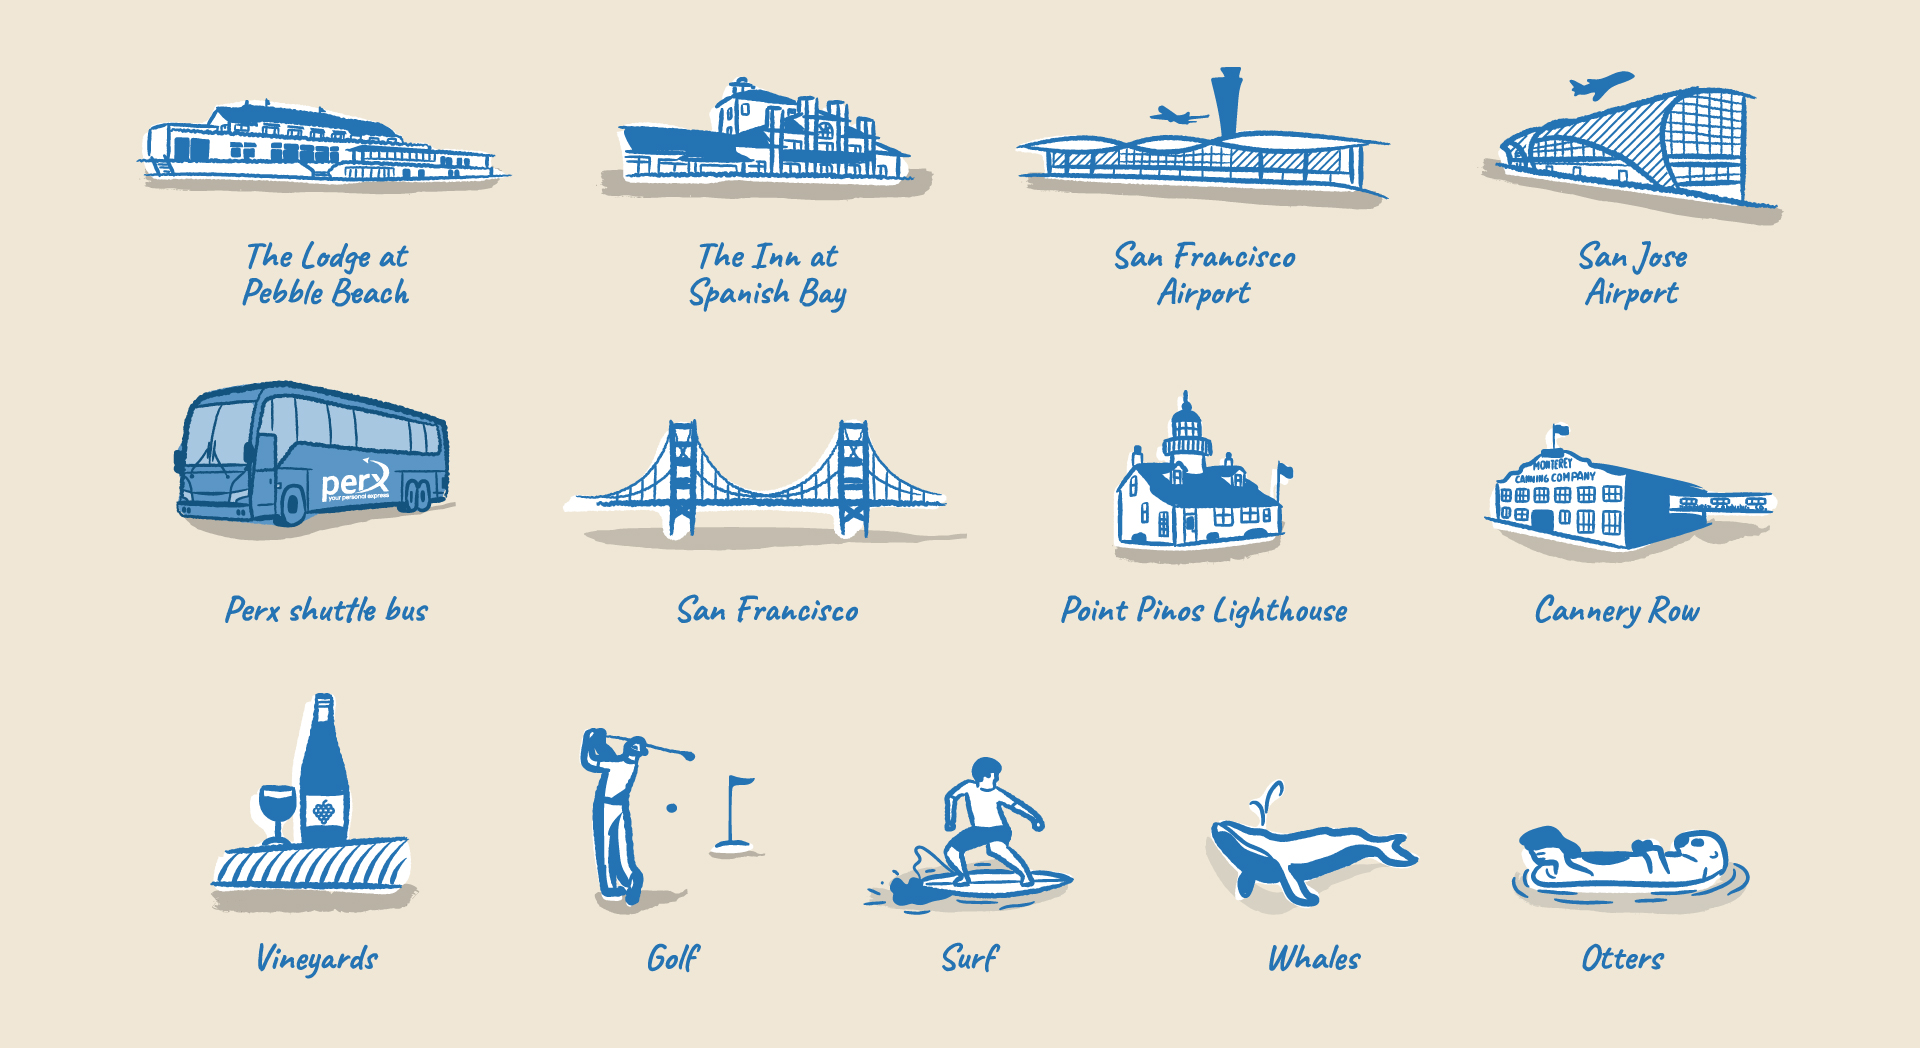 Icons created for the Monterey illustrated map